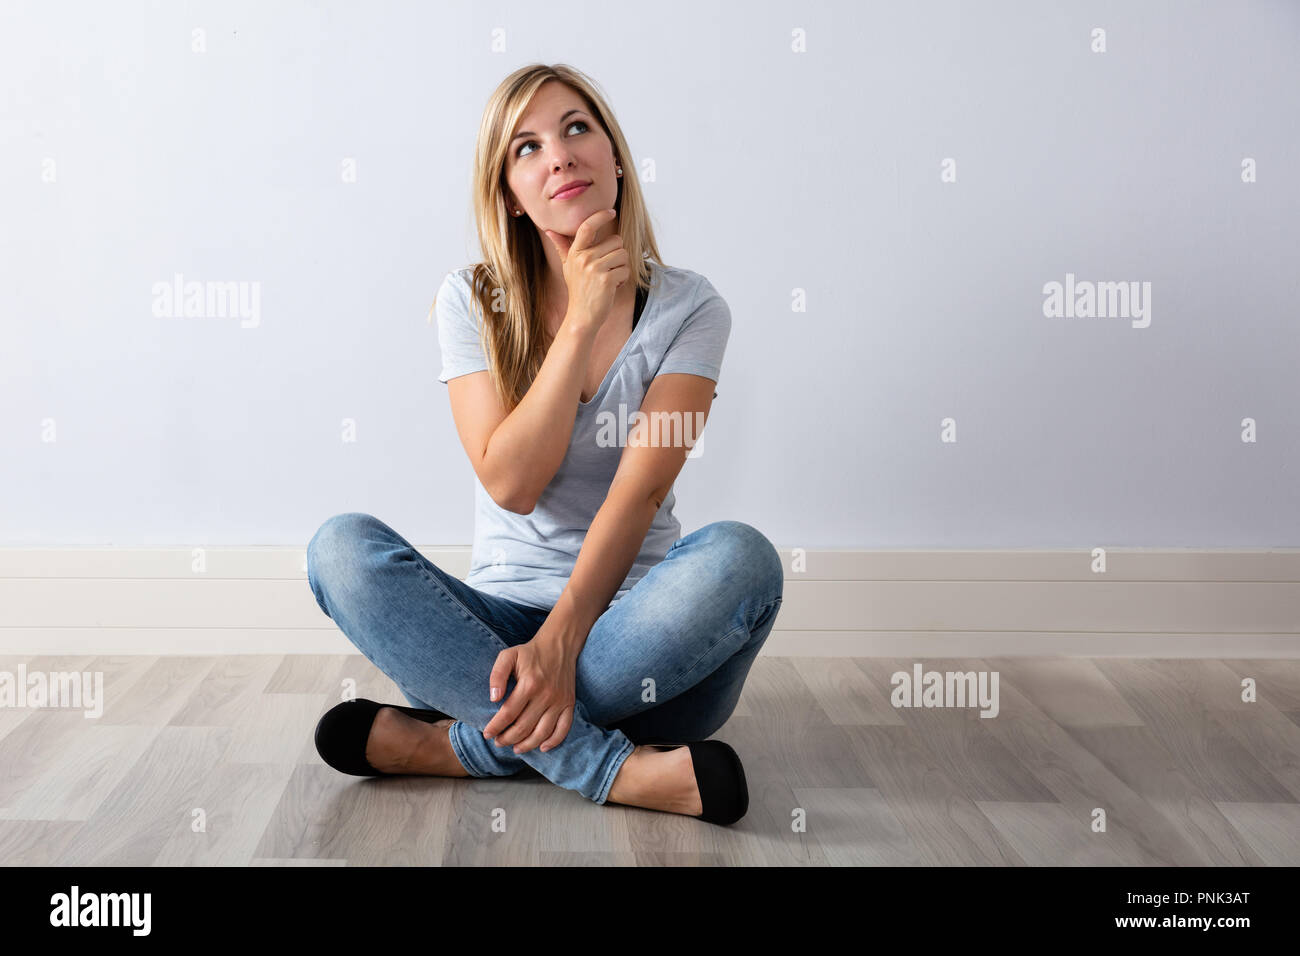 Portrait Of A Contemplated Young Woman Sitting On Hardwood Floor - Stock Image